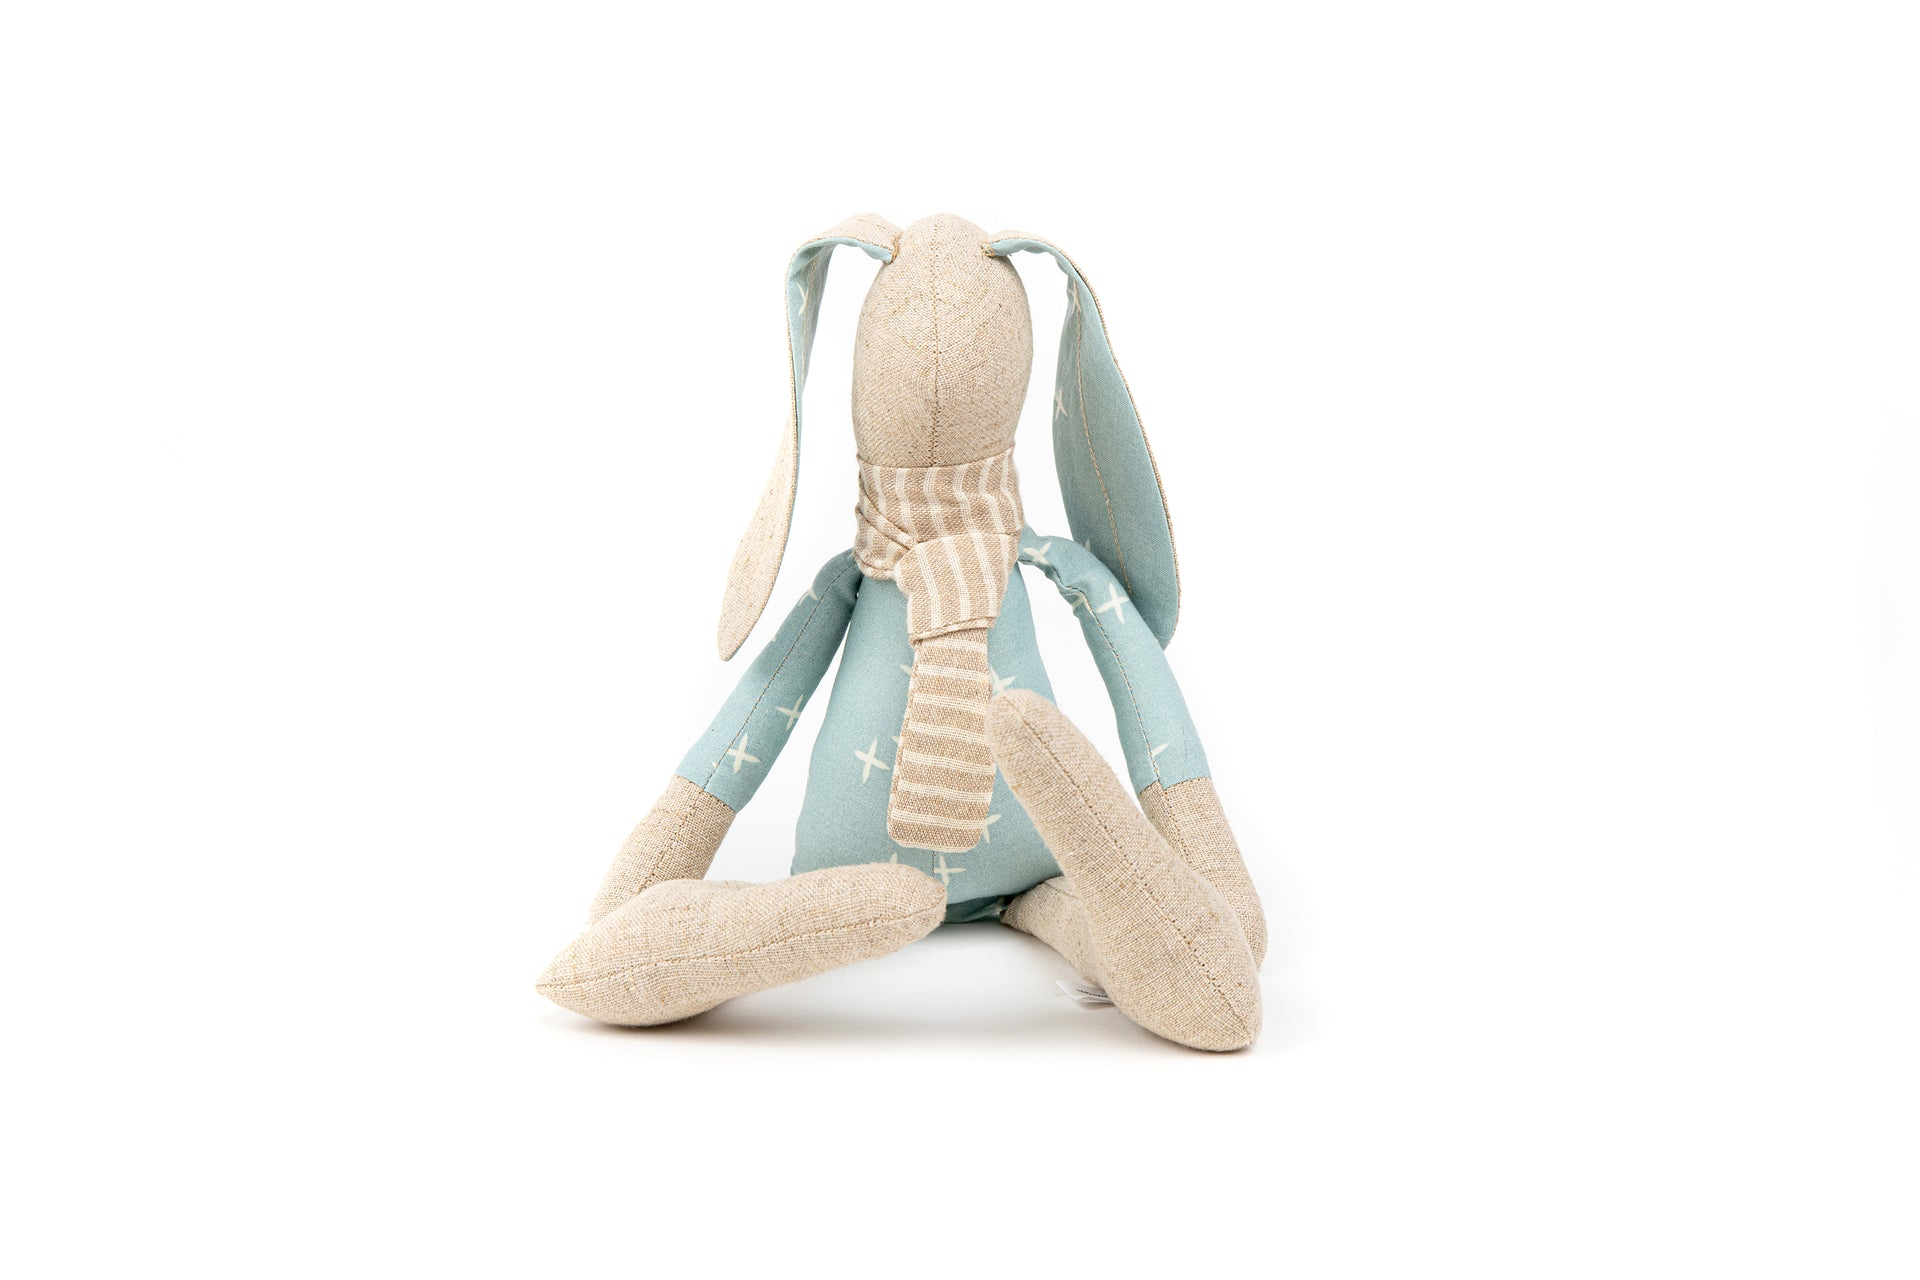 Home decor toy, Handmade bunny, Soft doll, Rabbit doll, Gender neutral gift, Textile doll,Plush toy doll, Ecofriendly toy, Easter Bunny doll